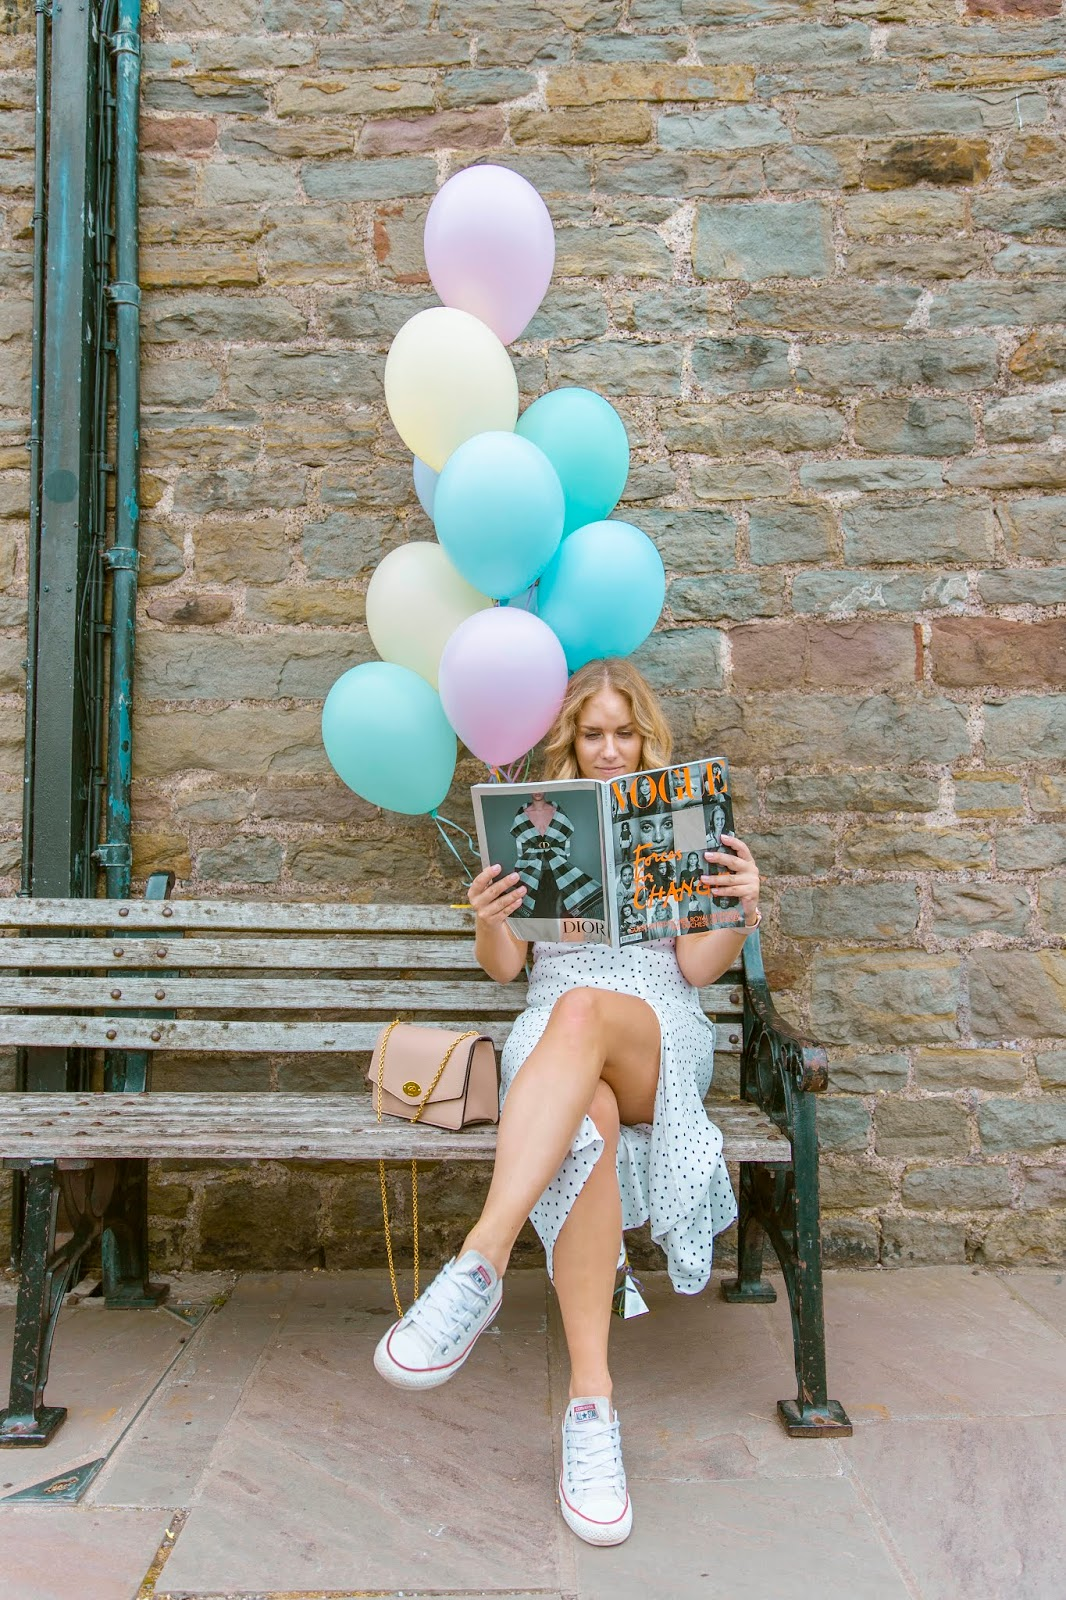 Rachel Emily on a bench in a white dress reading Meghan Markle's Vogue Issue with pastel coloured balloons in the background